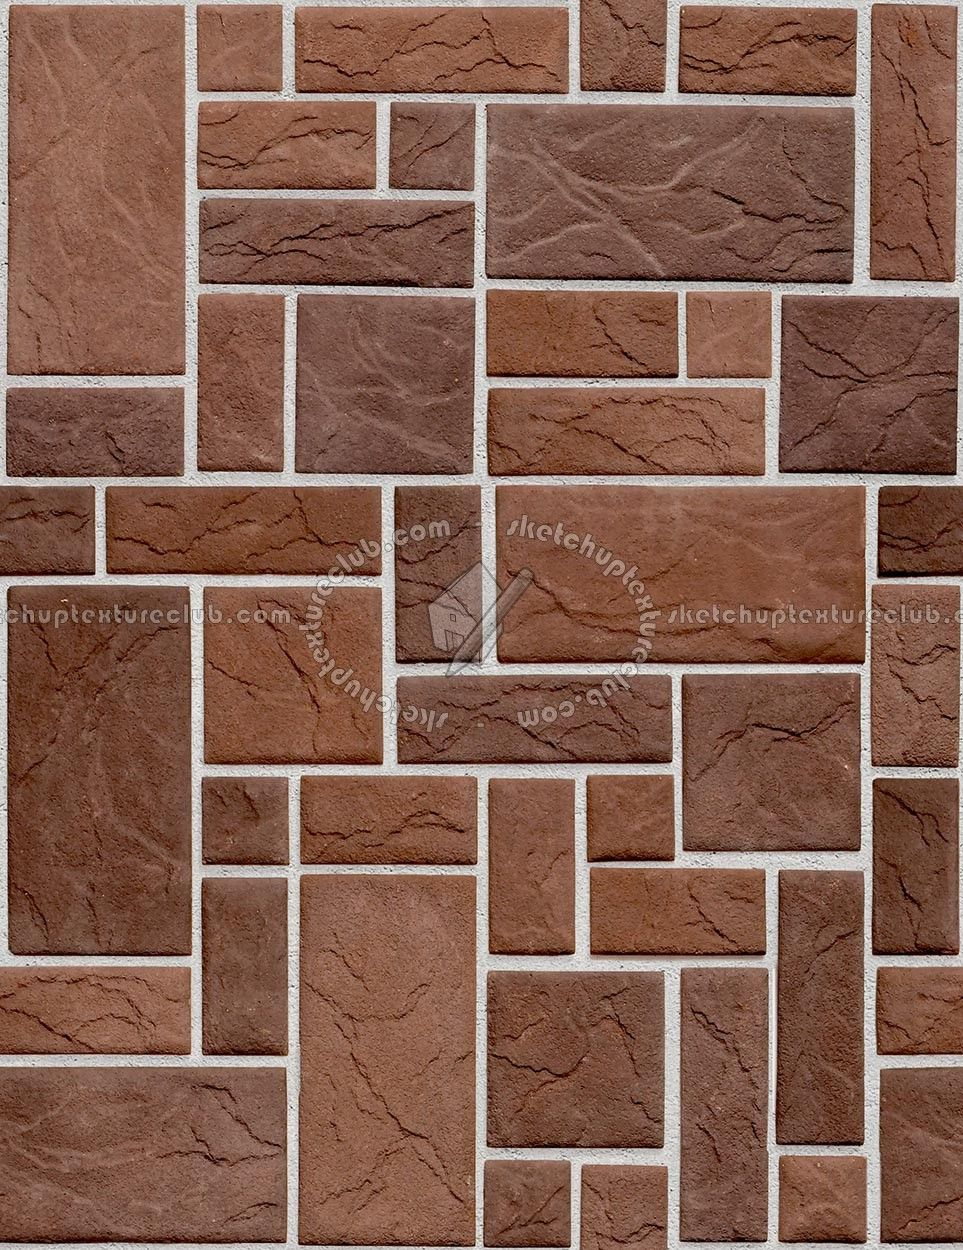 Wall cladding stone texture seamless 19007 textures - Exterior wall stone cladding texture ...